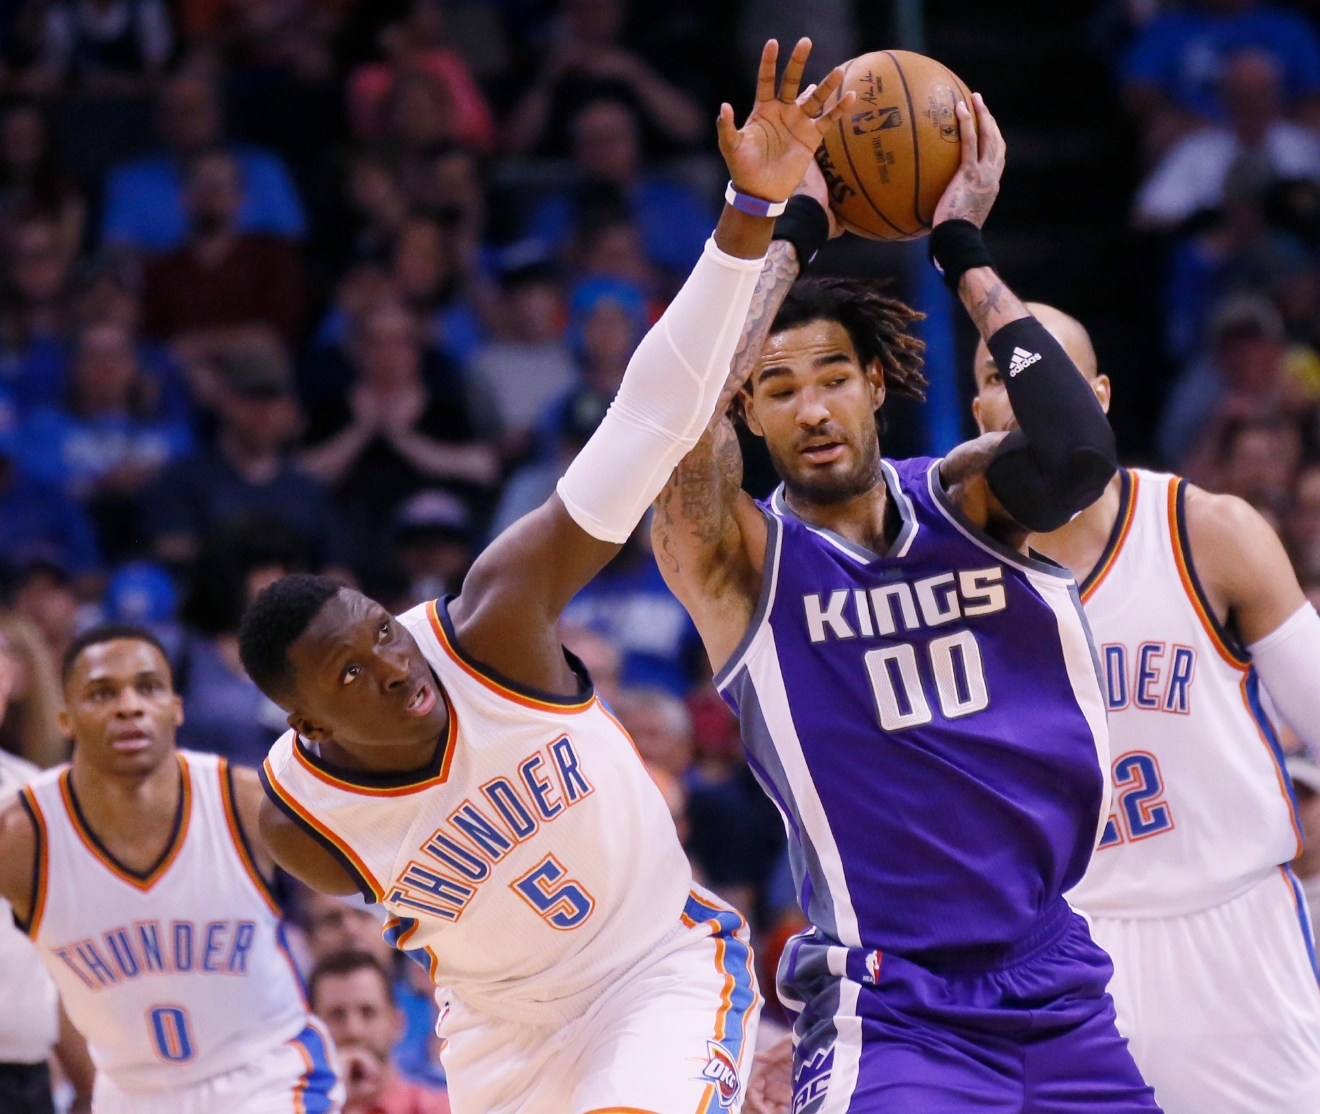 Oklahoma City Thunder guard Victor Oladipo (5) reaches for the ball held by Sacramento Kings center Willie Cauley-Stein (00) in the first quarter of an NBA basketball game in Oklahoma City, Saturday, March 18, 2017. (AP Photo/Sue Ogrocki)